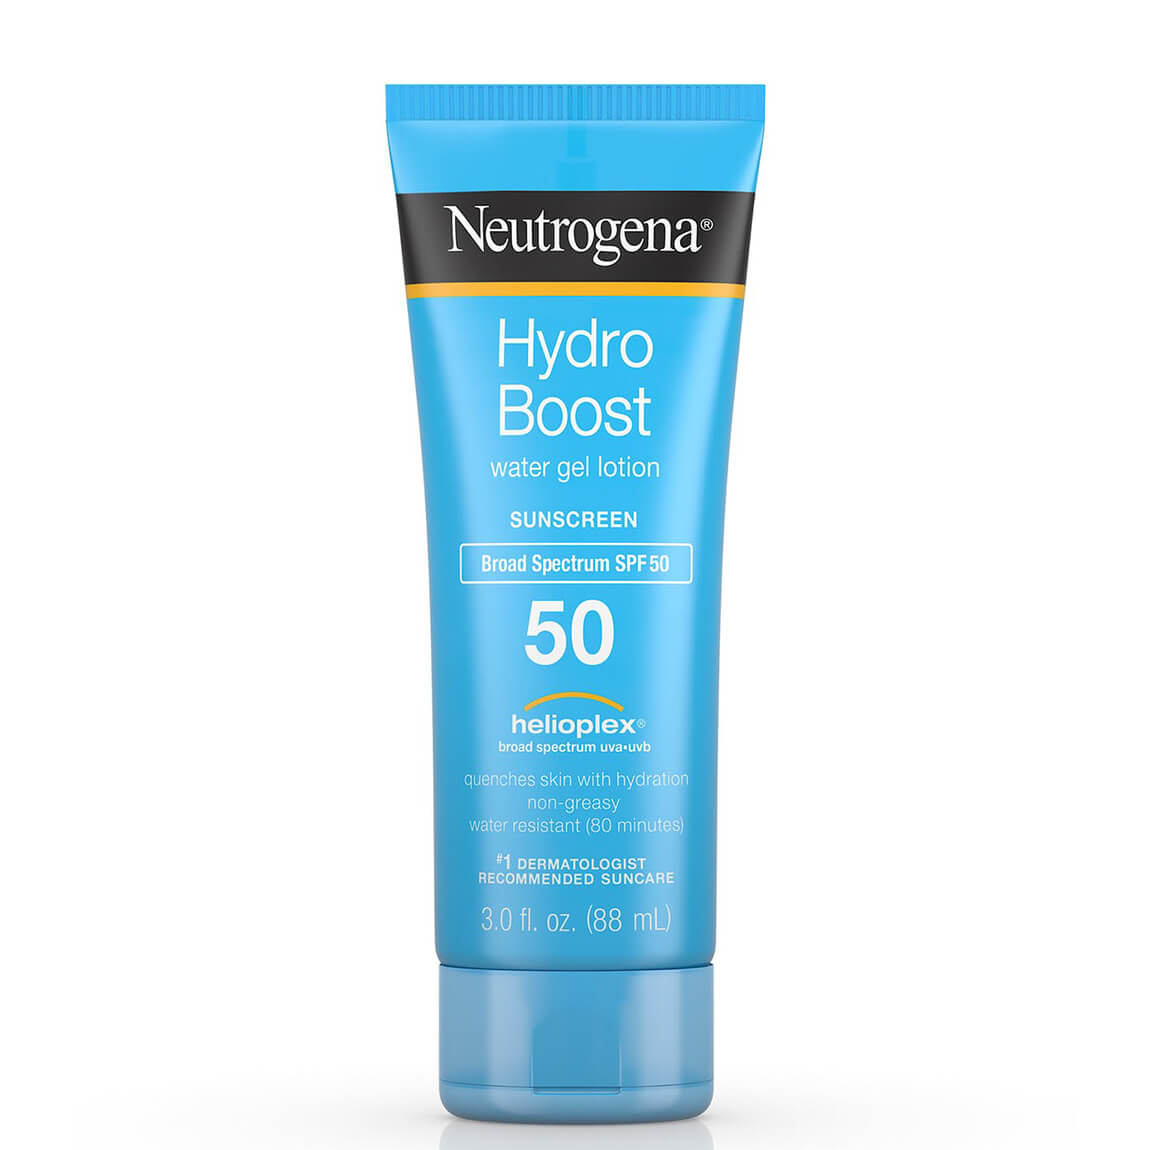 Neutrogena Hydro Boost Water Gel Sunscreen SPF50